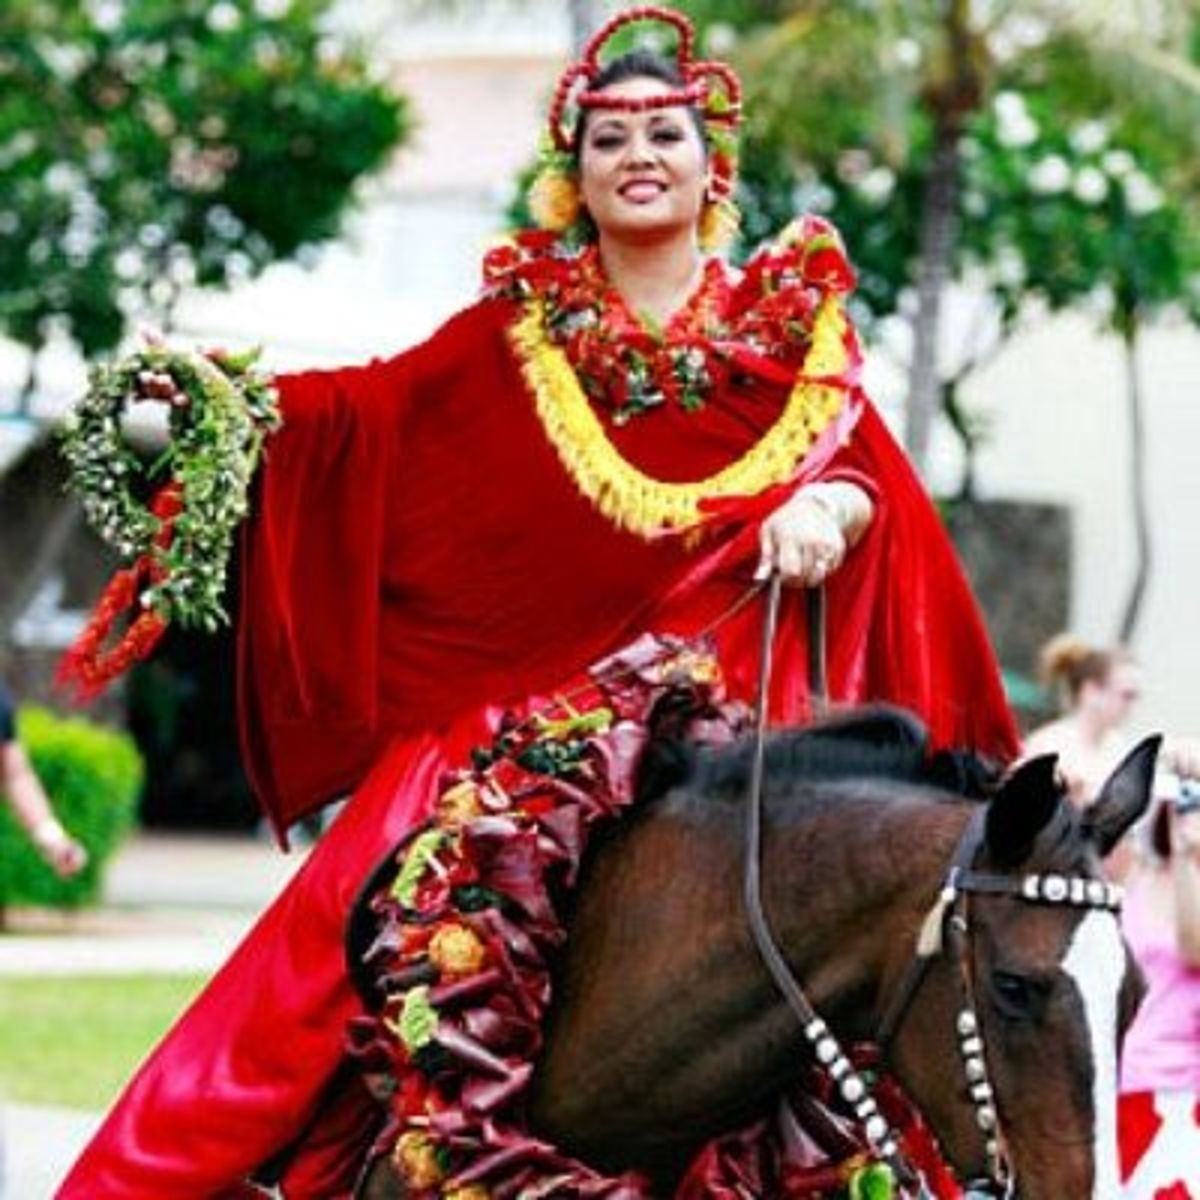 Aileen Kiesel, serving as princess of the island of Hawaii in Honolulu's King Kam Parade